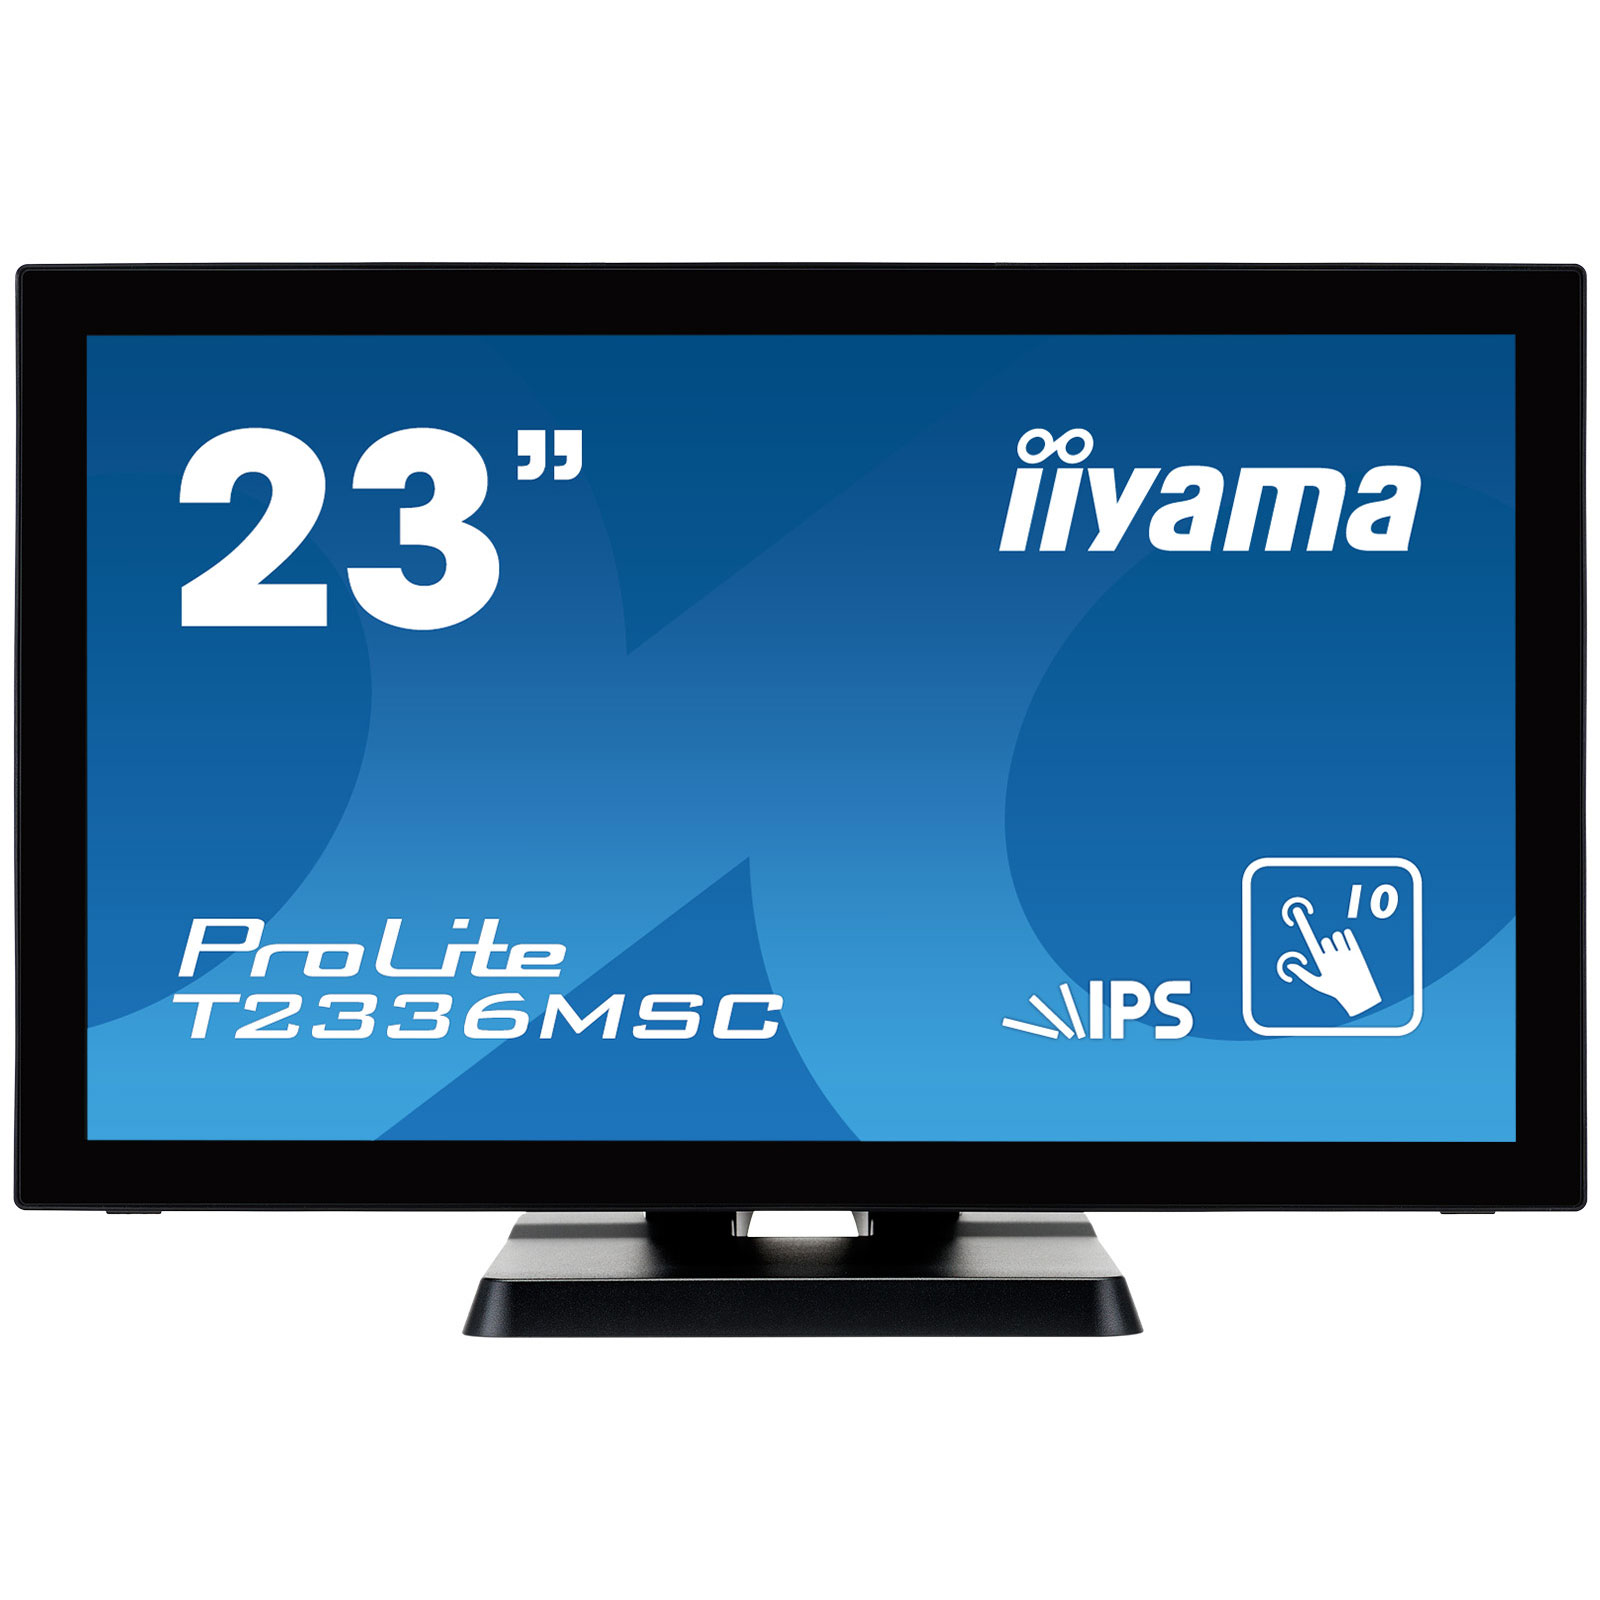 "Ecran PC iiyama 23"" LED Tactile - ProLite T2336MSC-B2 1920 x 1080 pixels - Tactile MultiTouch 10 points tactiles - IPS - 5 ms - Format large 16/9 - HDMI - Noir"